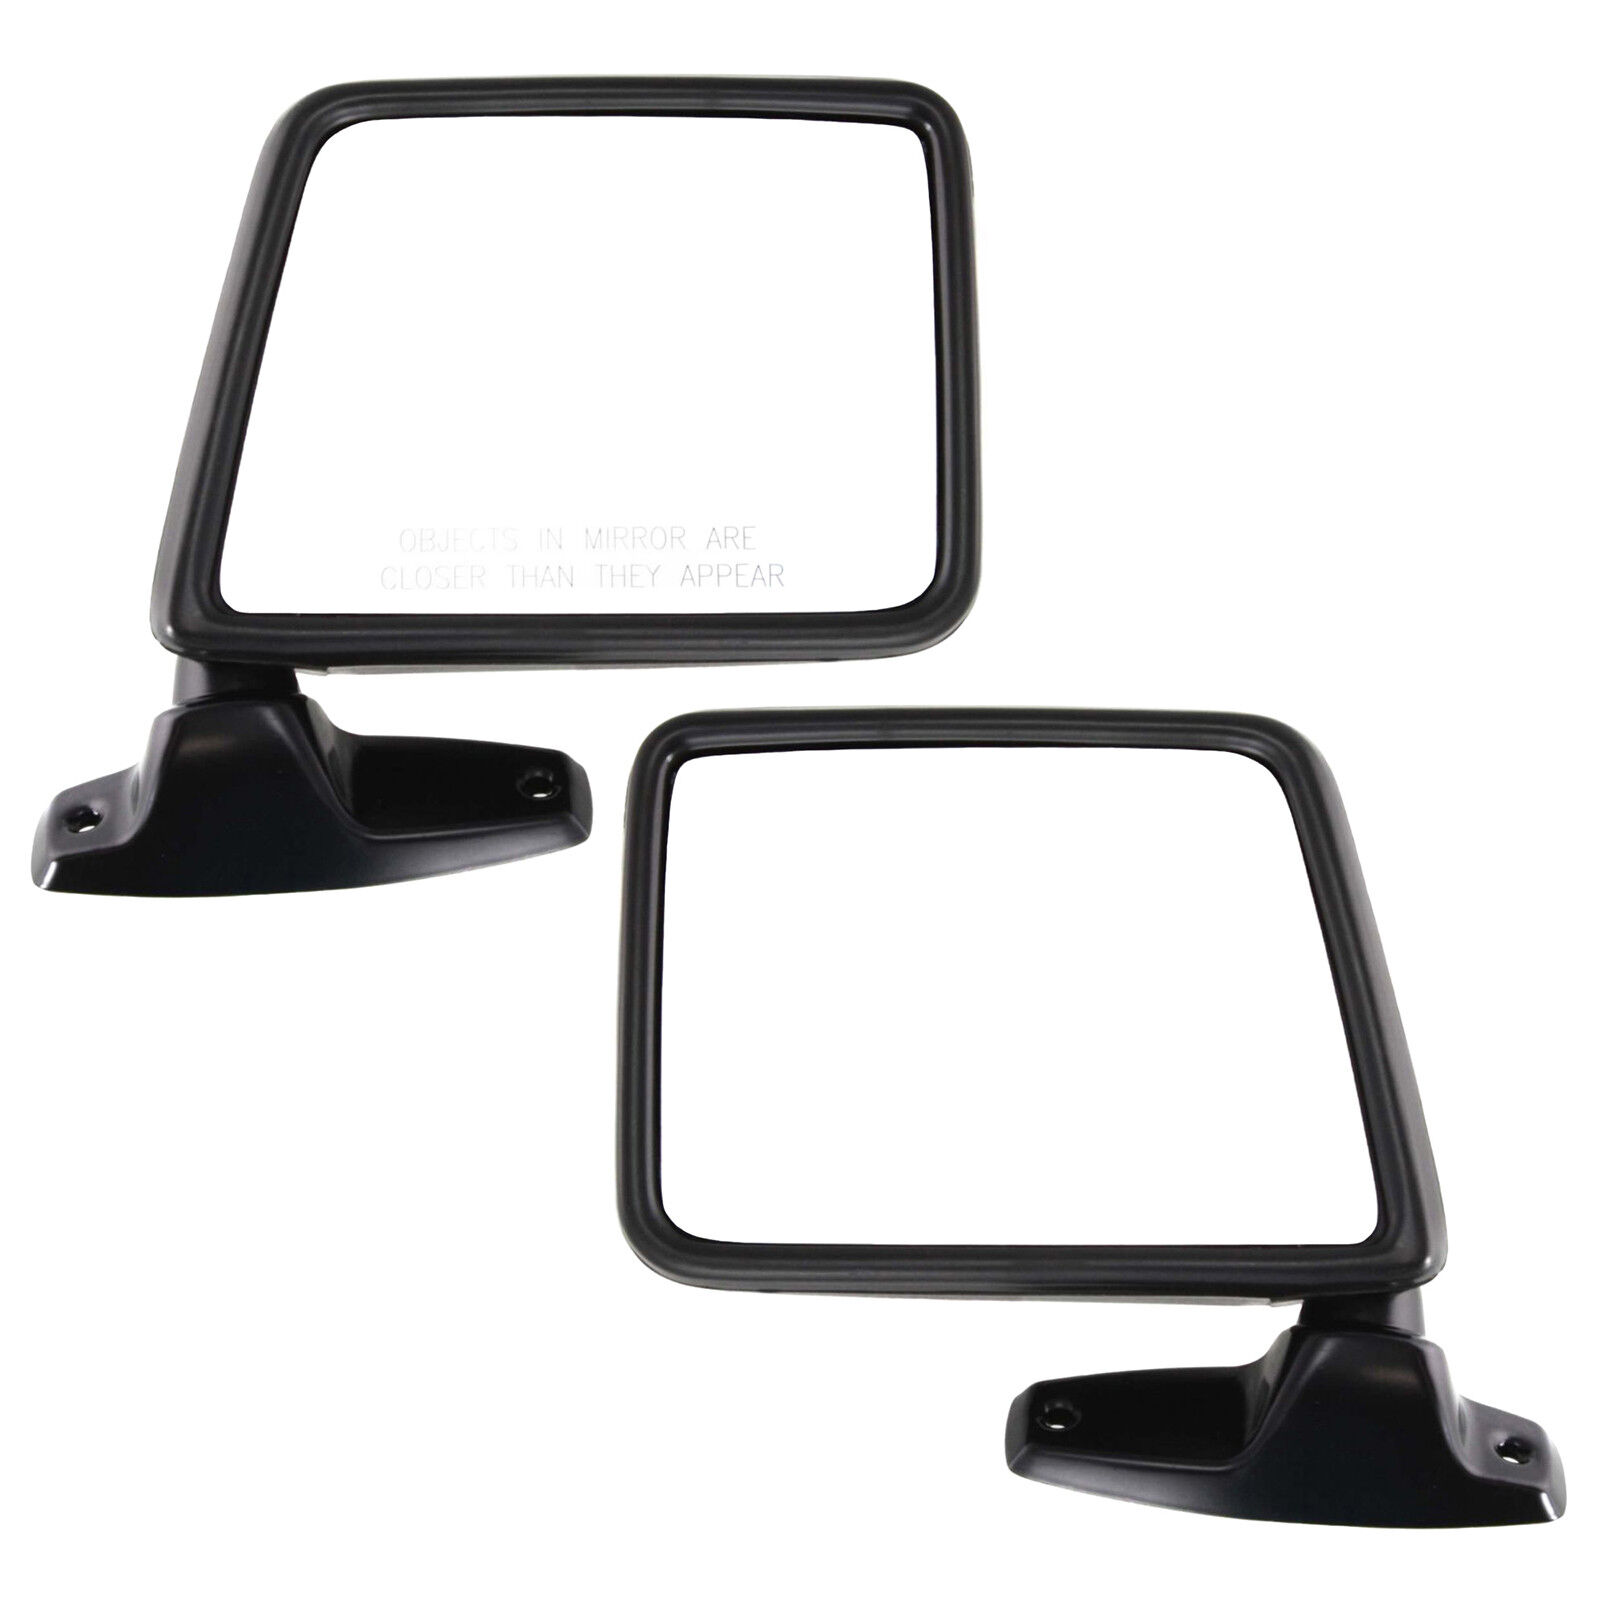 New Driver Side Mirror For Ford Ranger 1983-1992 FO1320108